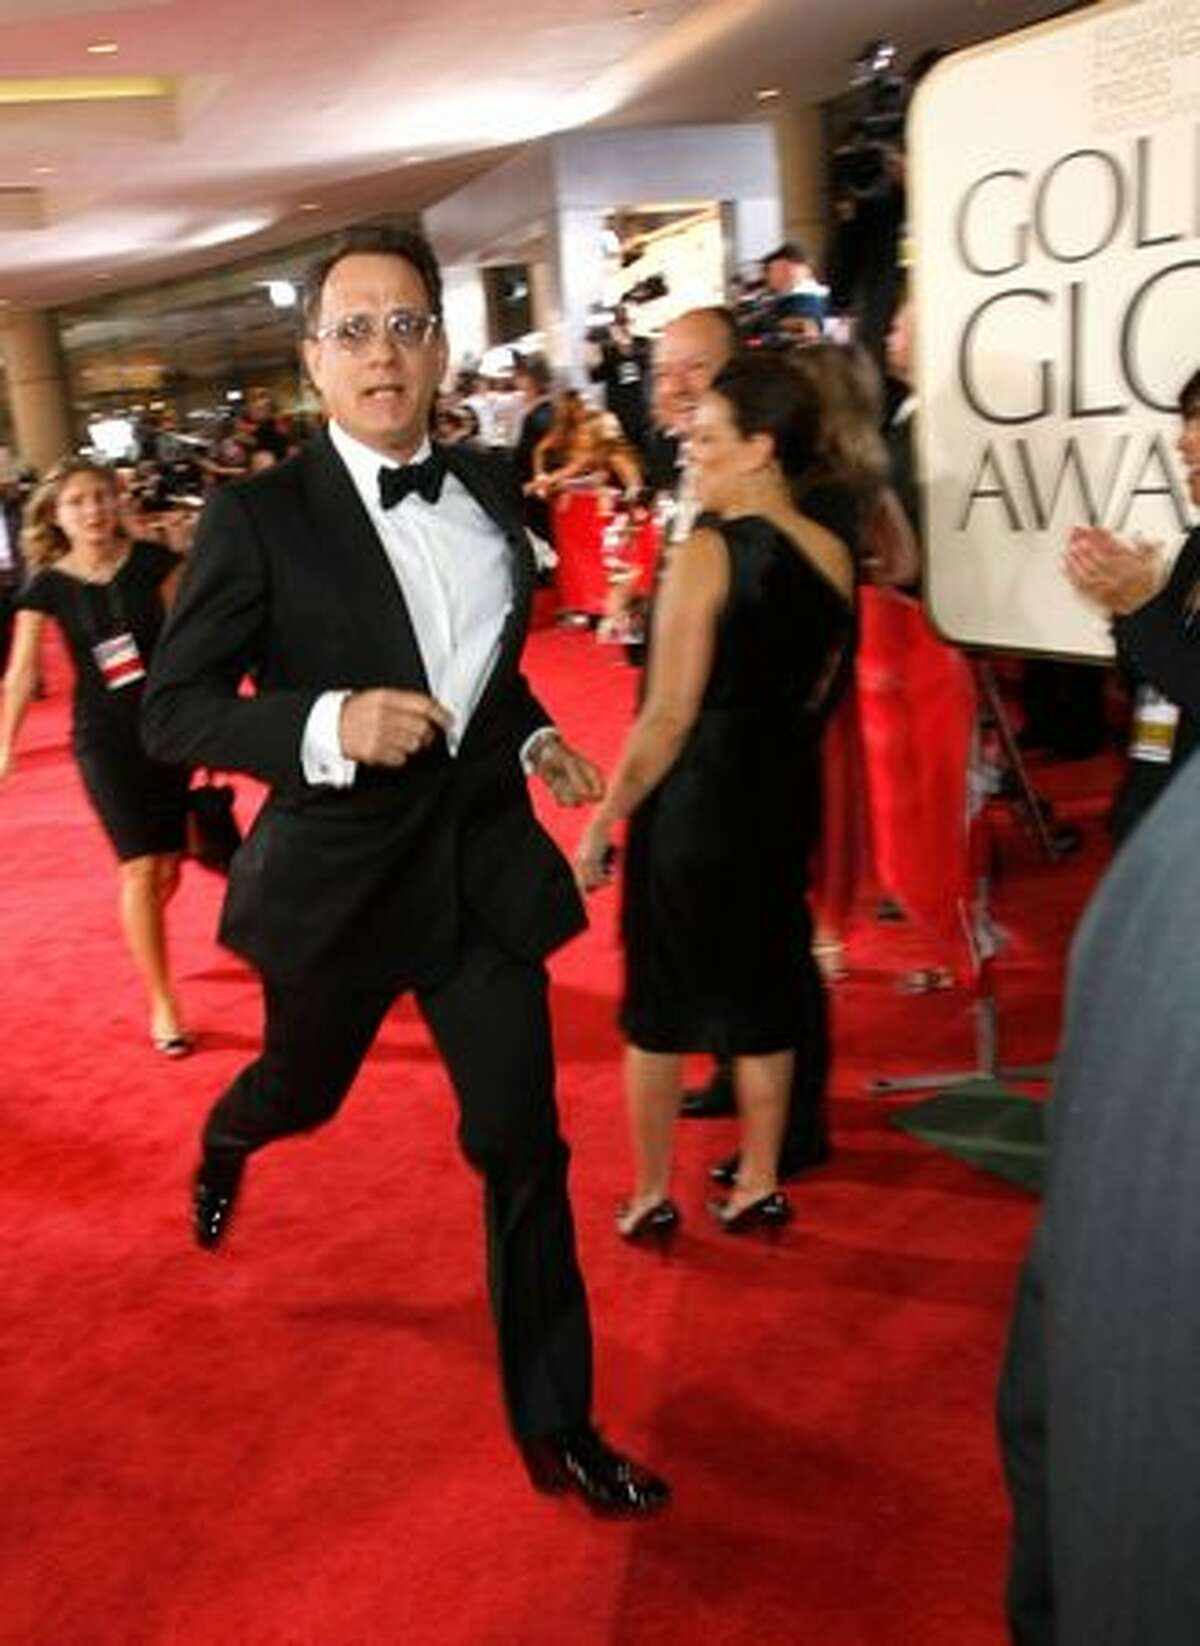 Actor Tom Hanks runs at the 66th Golden Globe Awards held at the Beverly Hilton Hotel on Jan. 11 in Beverly Hills, Calif.